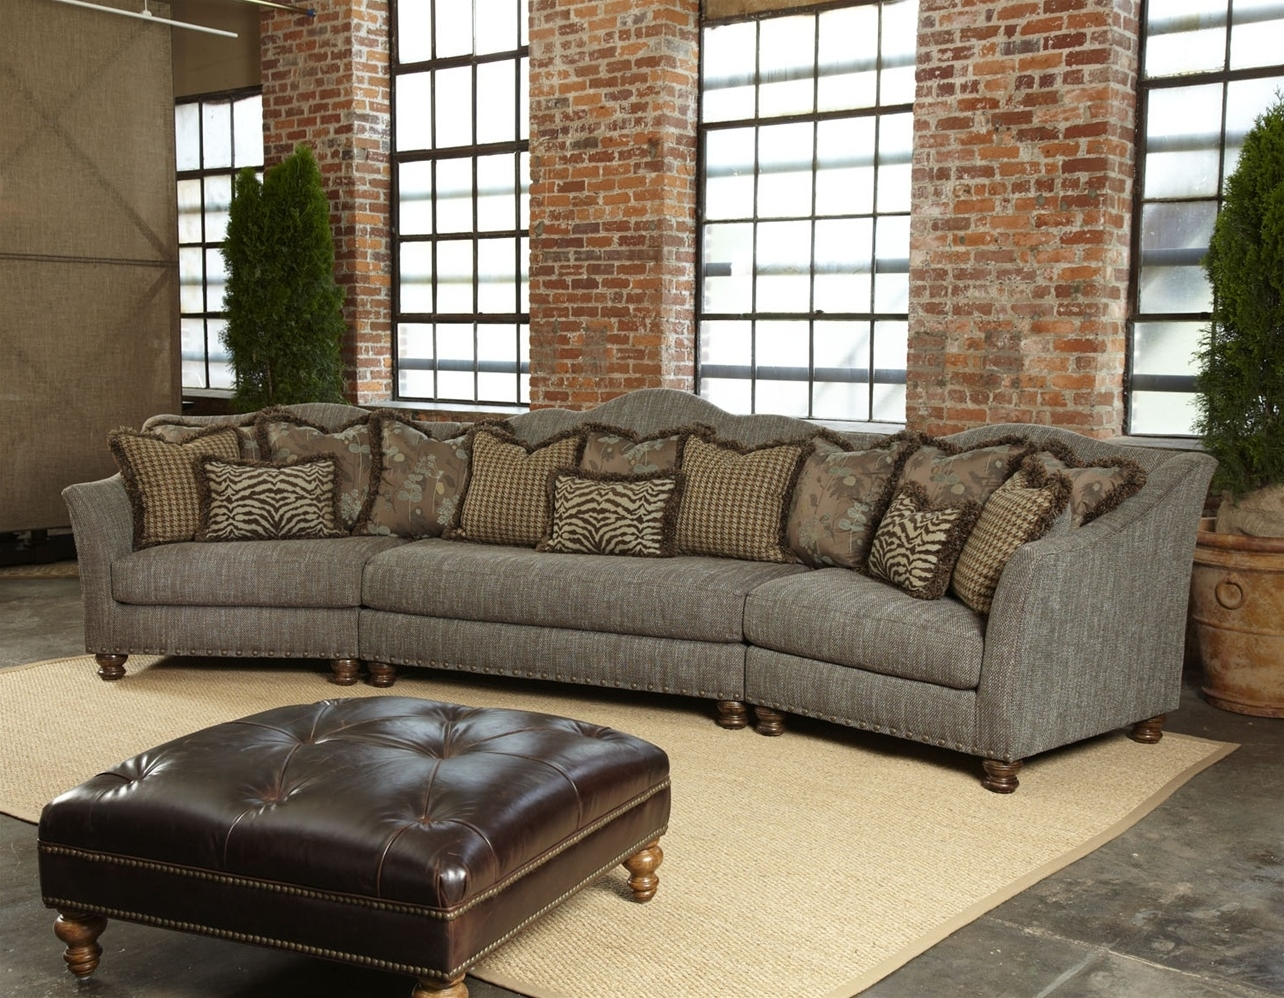 Well Liked Good Quality Sectional Sofas – Cleanupflorida Within Sectional Sofas In North Carolina (View 7 of 20)